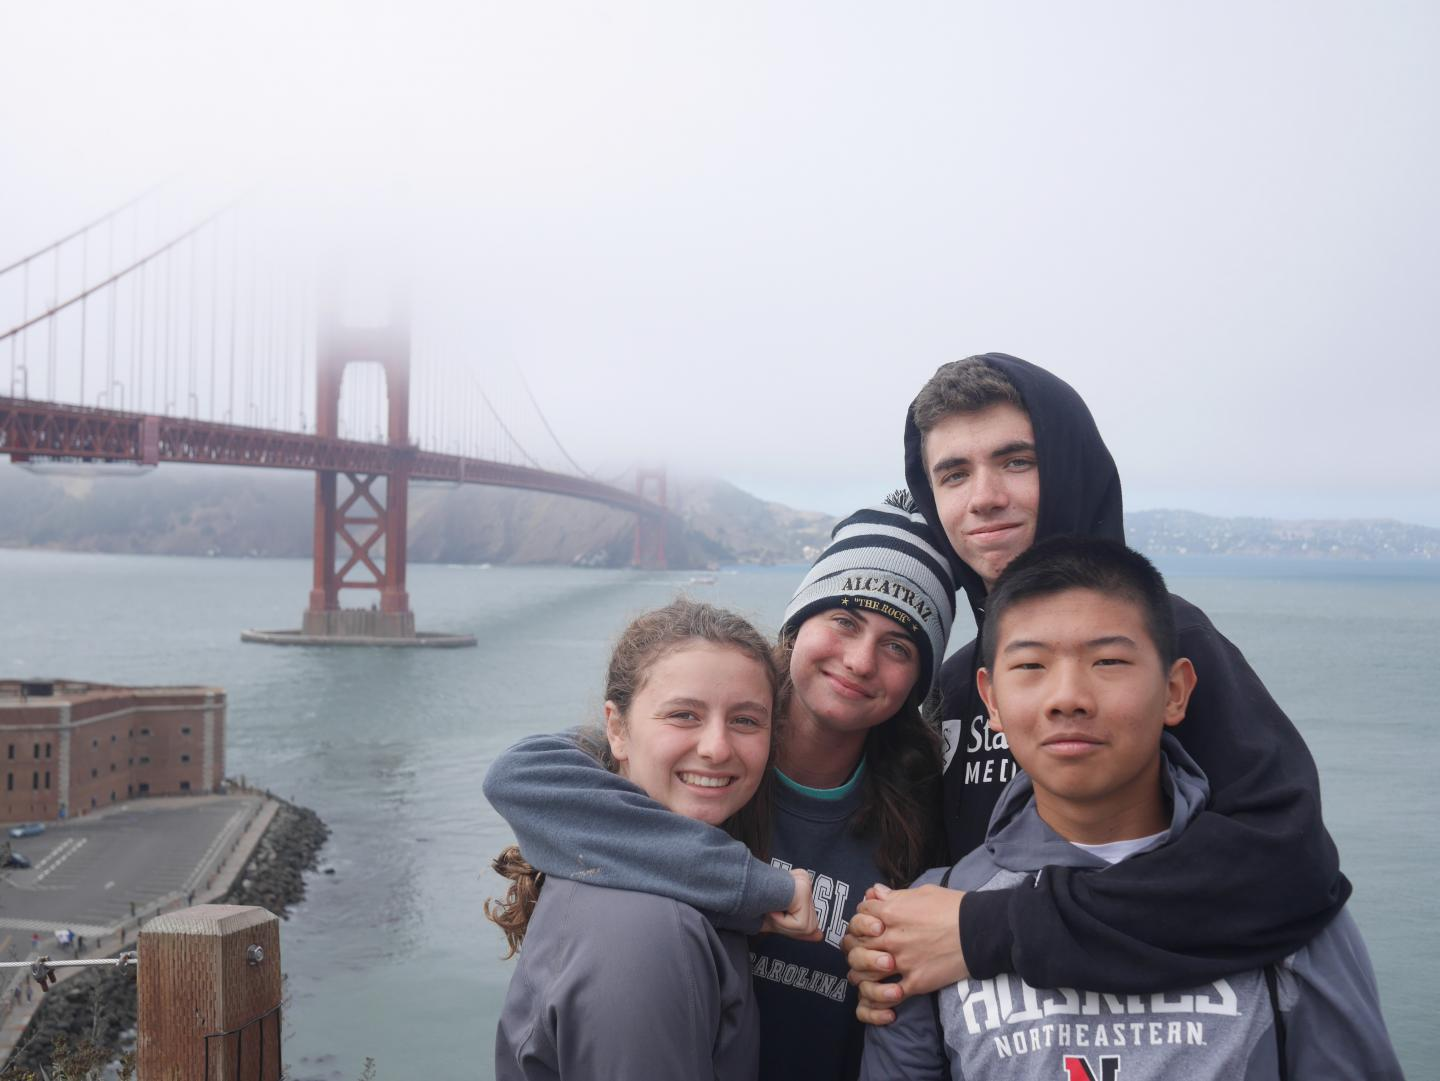 A group of friends poses for a photo at the Golden Gate Bridge during their summer tour of San Fransisco, California.